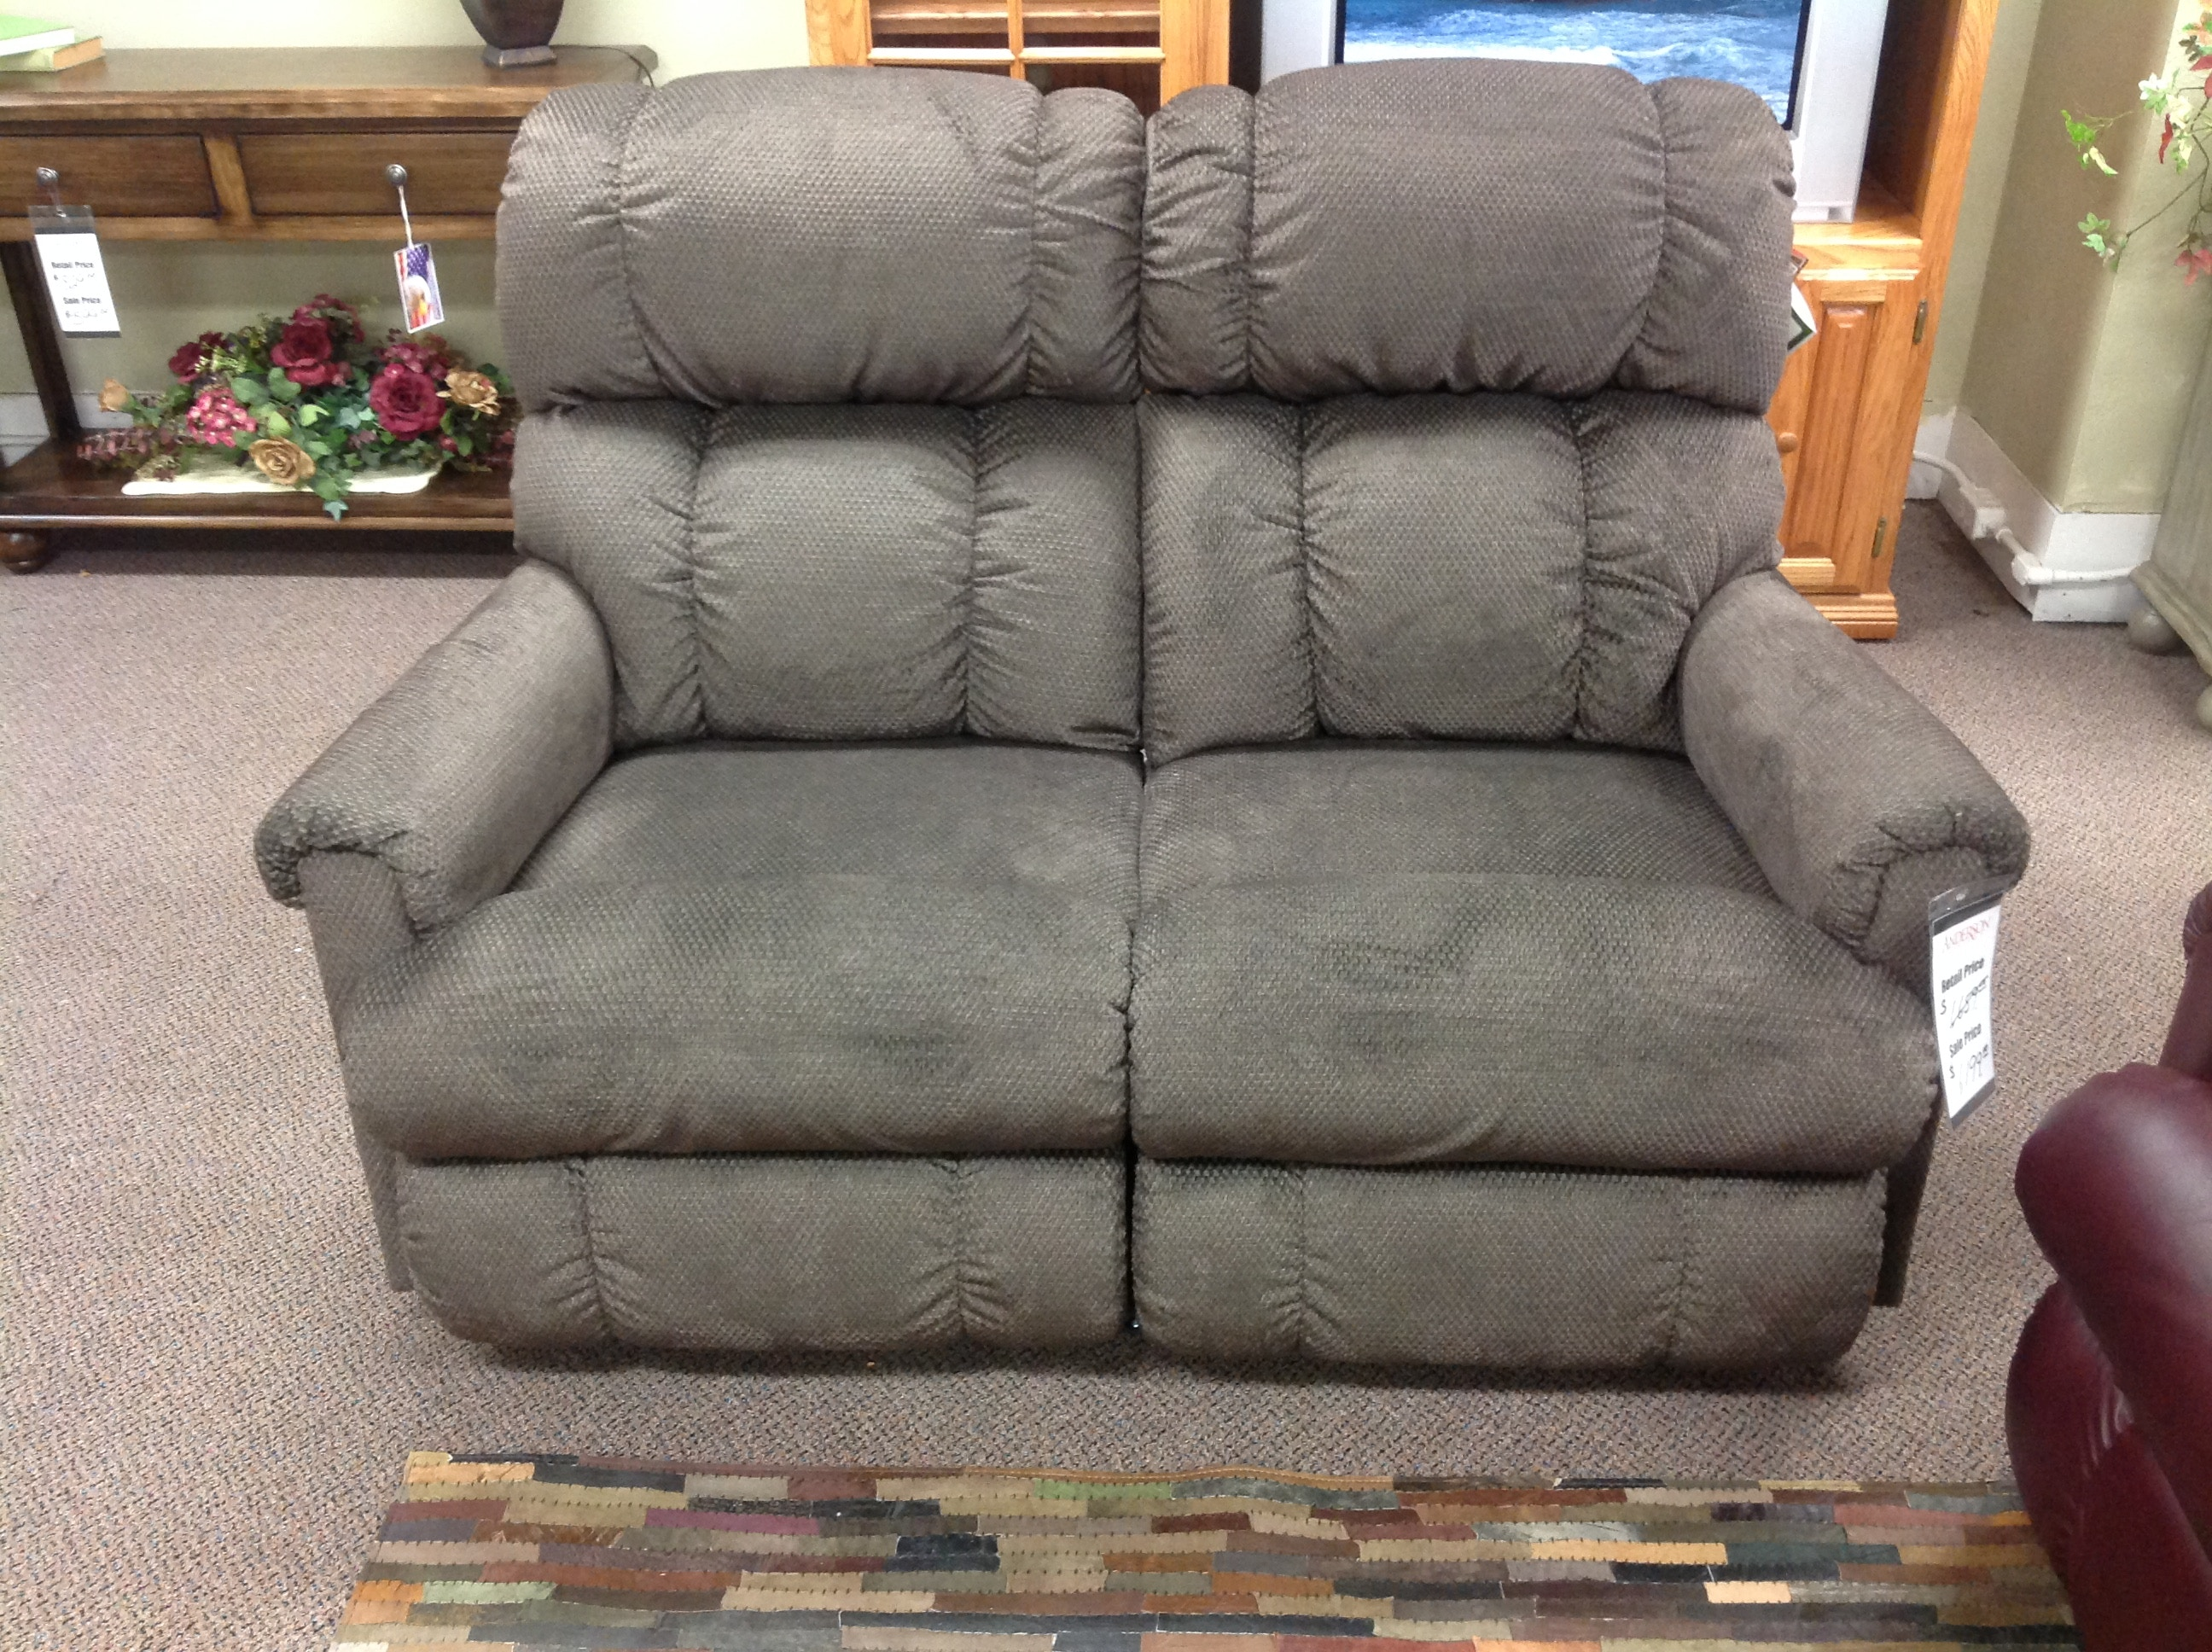 living room loveseats french country sofas anderson furniture company duluth virginia mn 320512